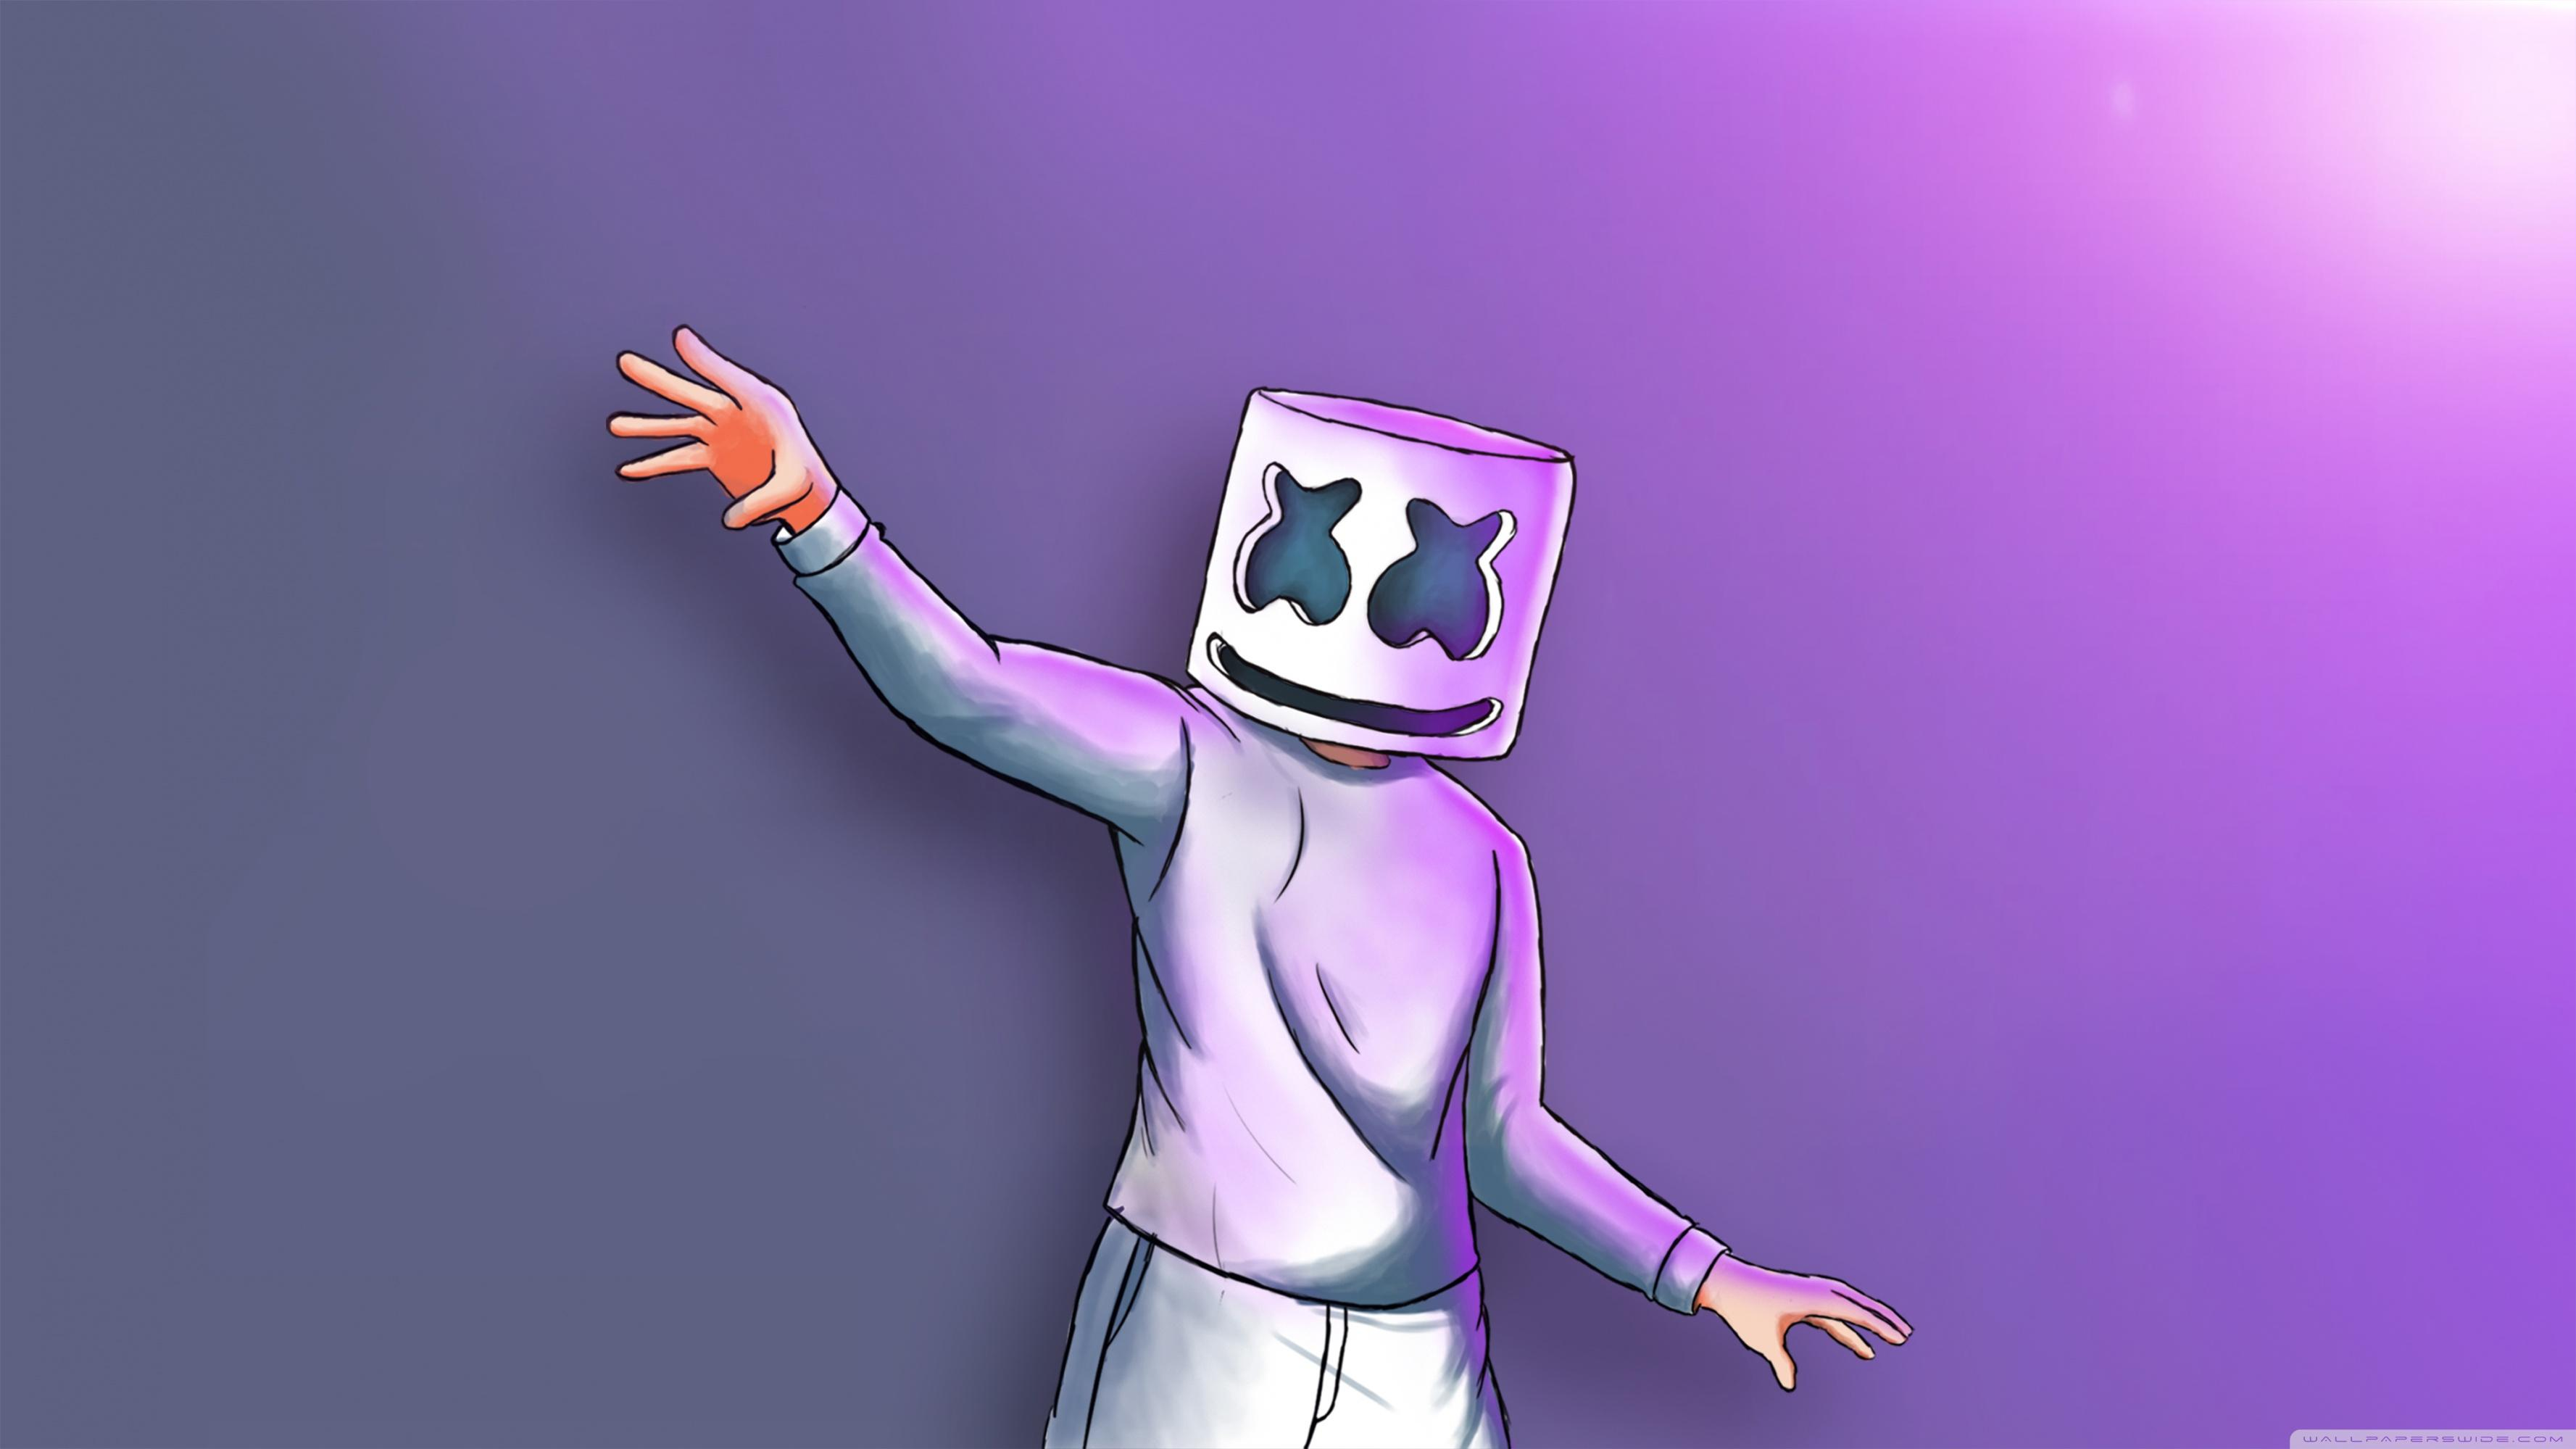 Download Marshmello Wallpaper Hd Backgrounds Download Itl Cat